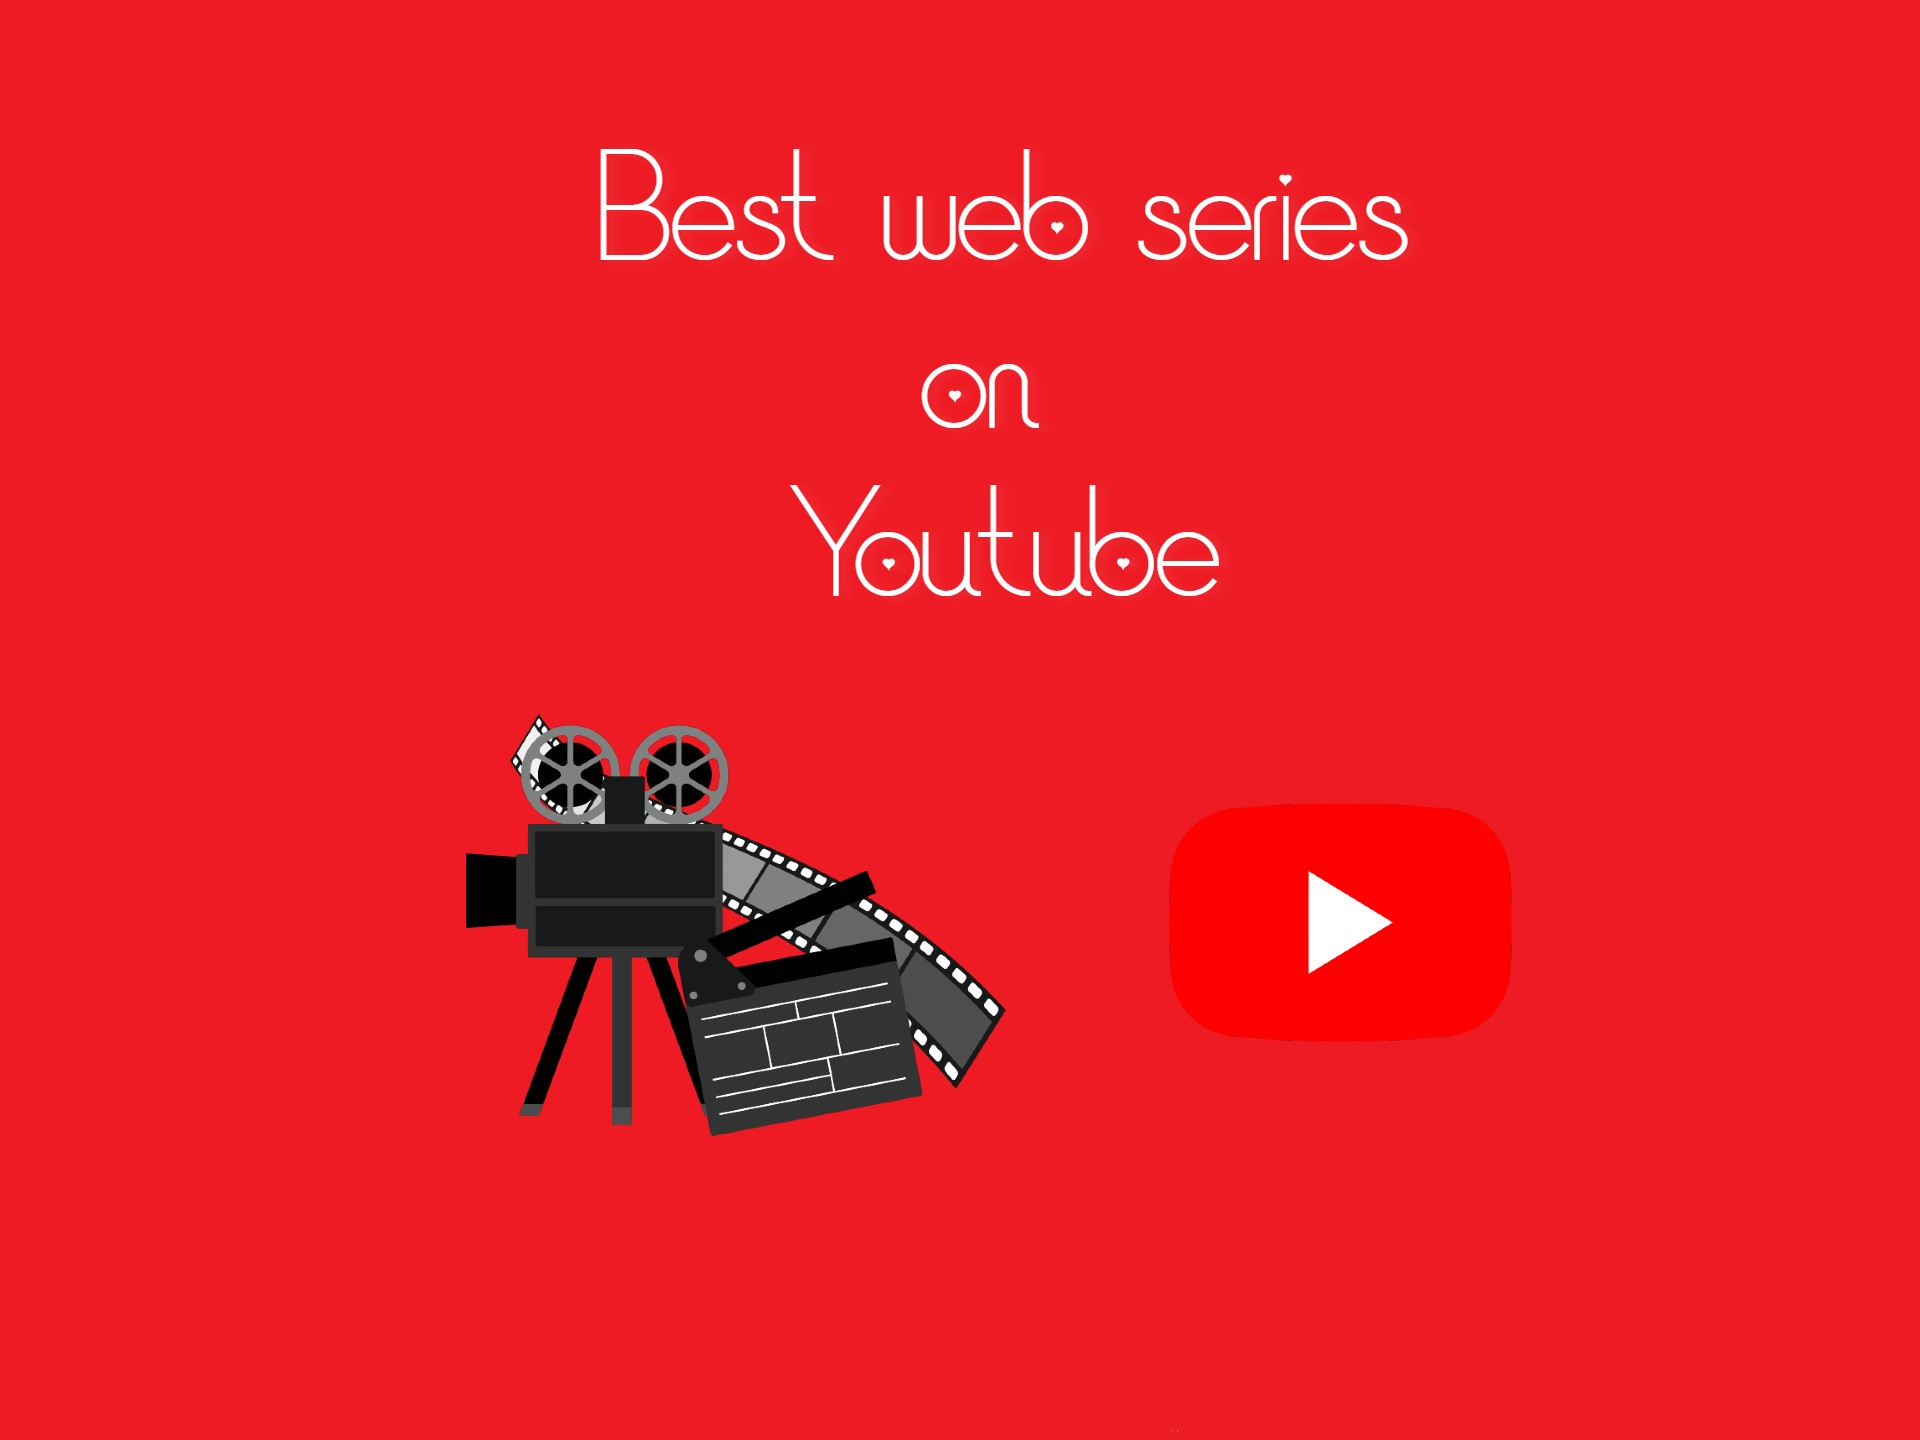 Best web series on youtube